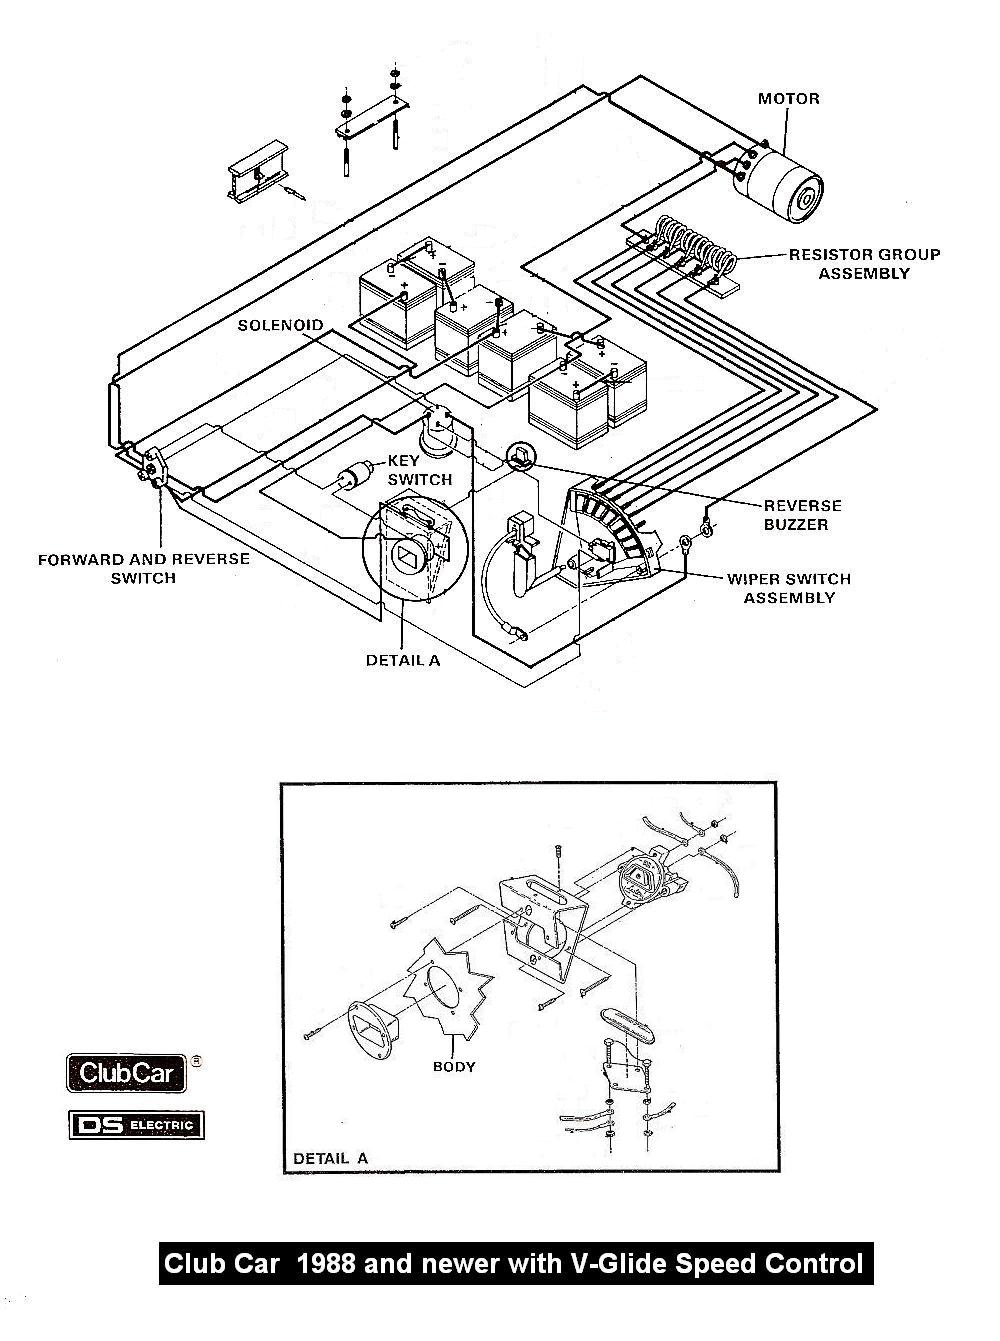 VintageGolfCartParts.com - on club cart brakes, club cart engine diagram, club cart 48 volt battery, club car electrical schematic, club cart parts diagram, club cart wheels, club car wiring, club cart battery diagram, club cart ignition switch, club car diagram, club cart rear end diagram, club car electric motor repair, club cart lights, club cart batteries, club cart schematics, club cart cover, club cart coil diagram, club cart tires, club cart service manual, club car precedent enclosures,